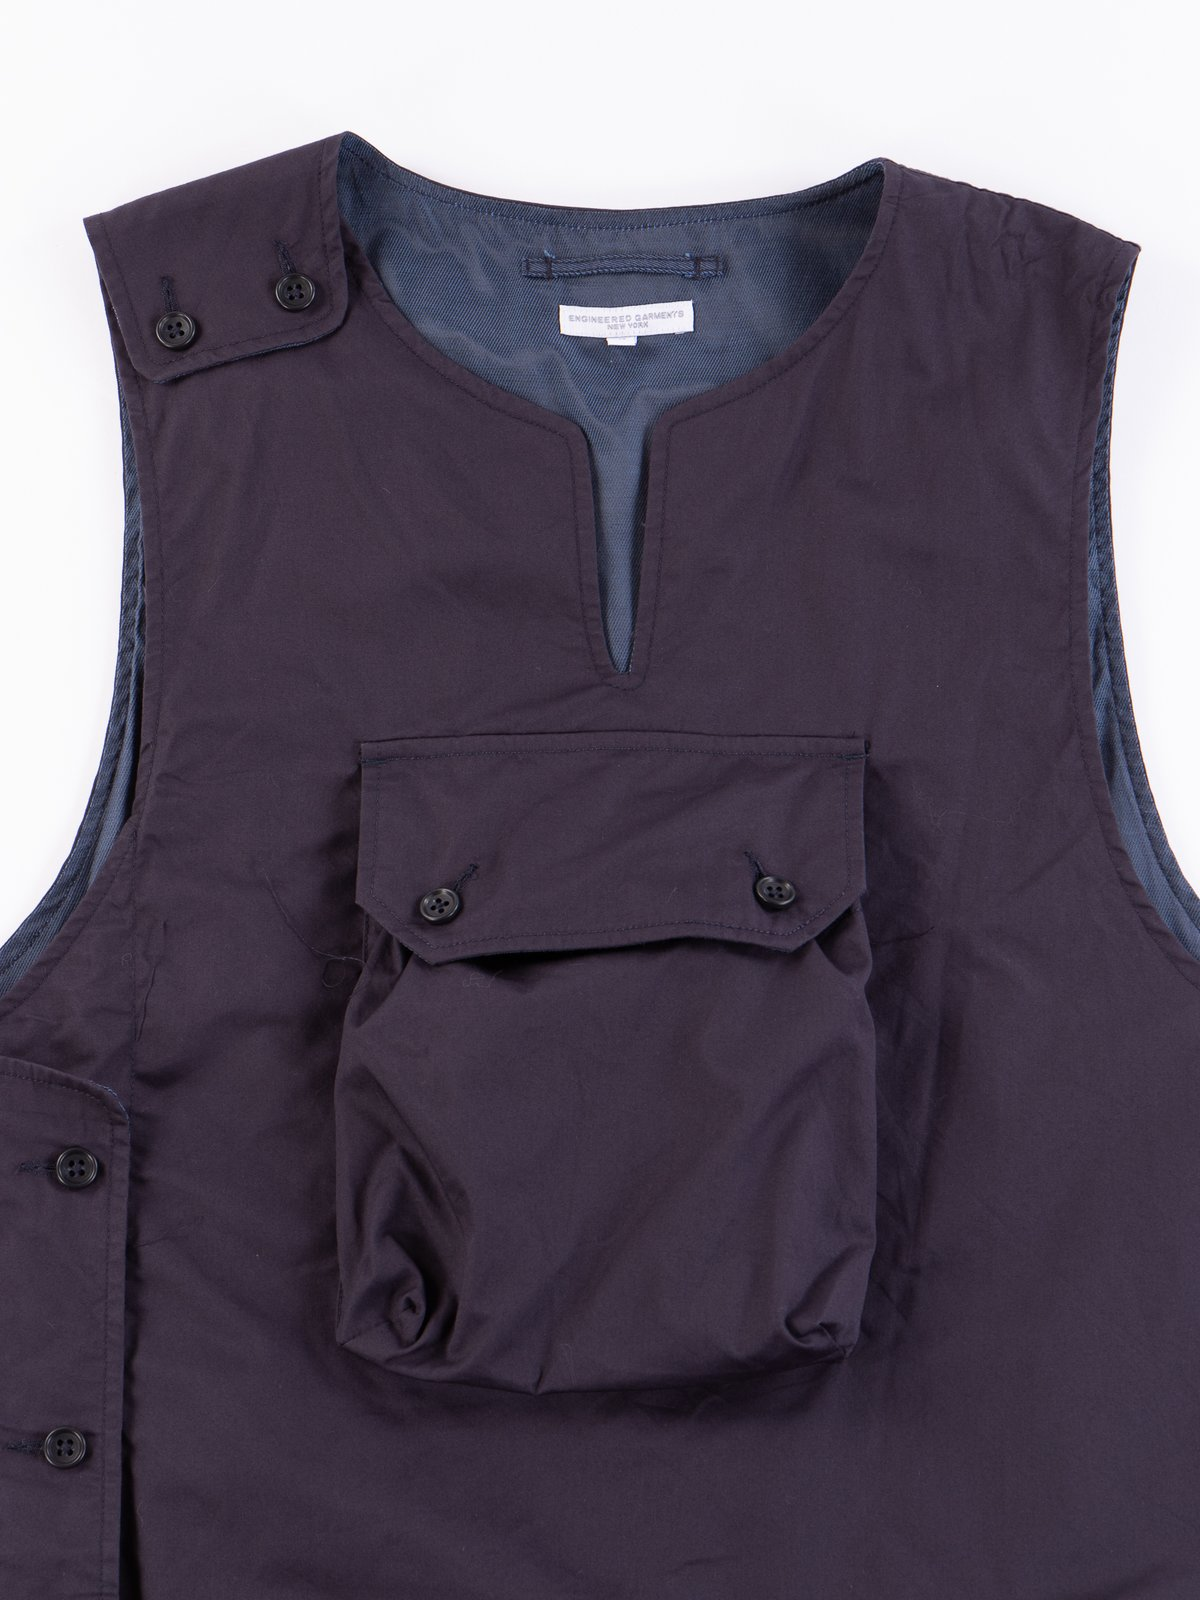 Dark Navy High Count Twill Cover Vest - Image 3